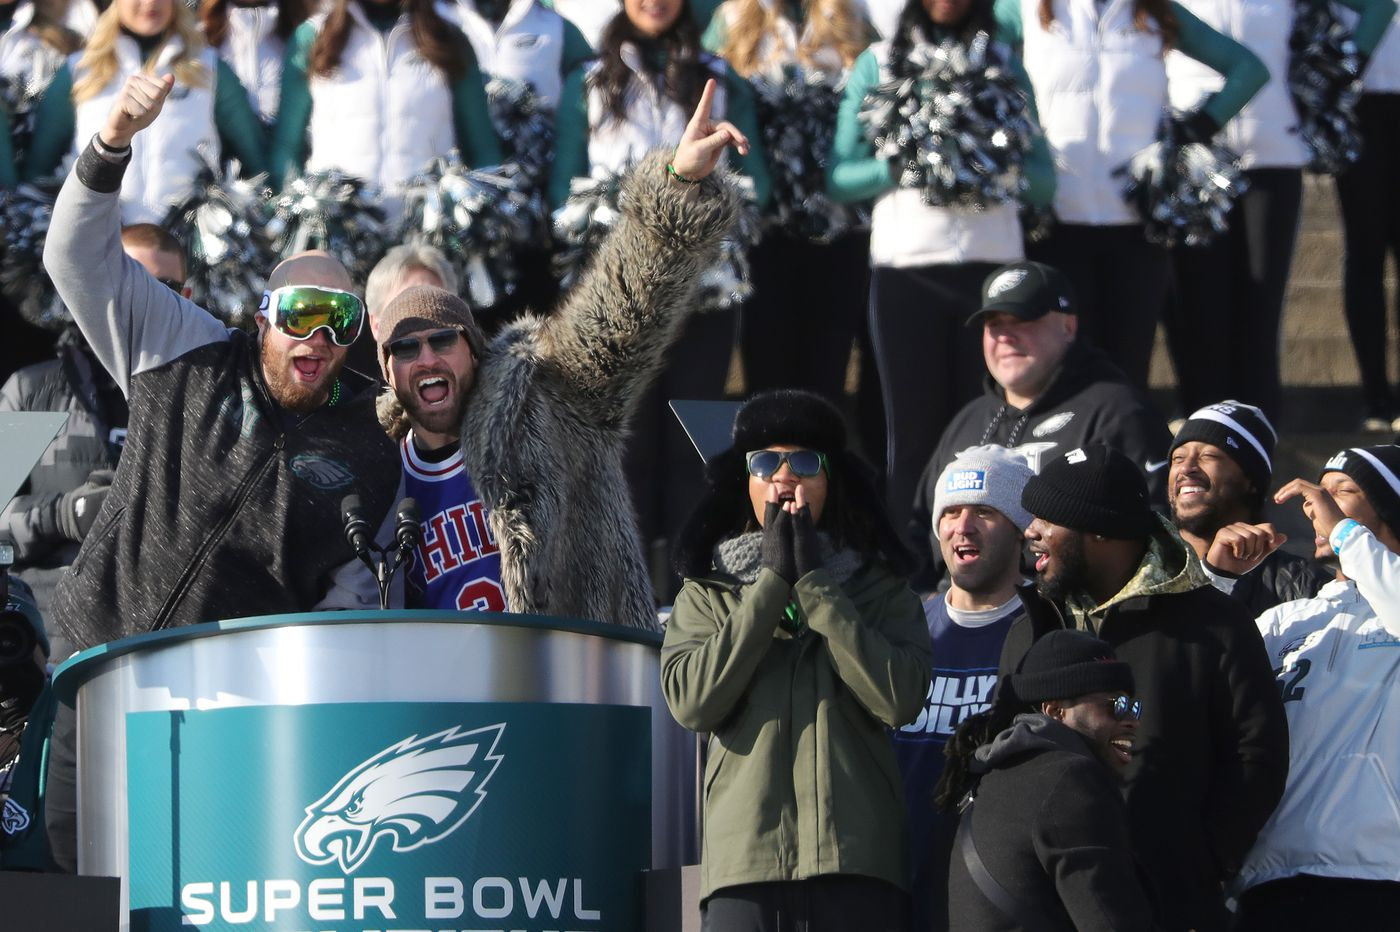 Training camp storylines: How will the Eagles handle success and avoid a Super Bowl hangover?